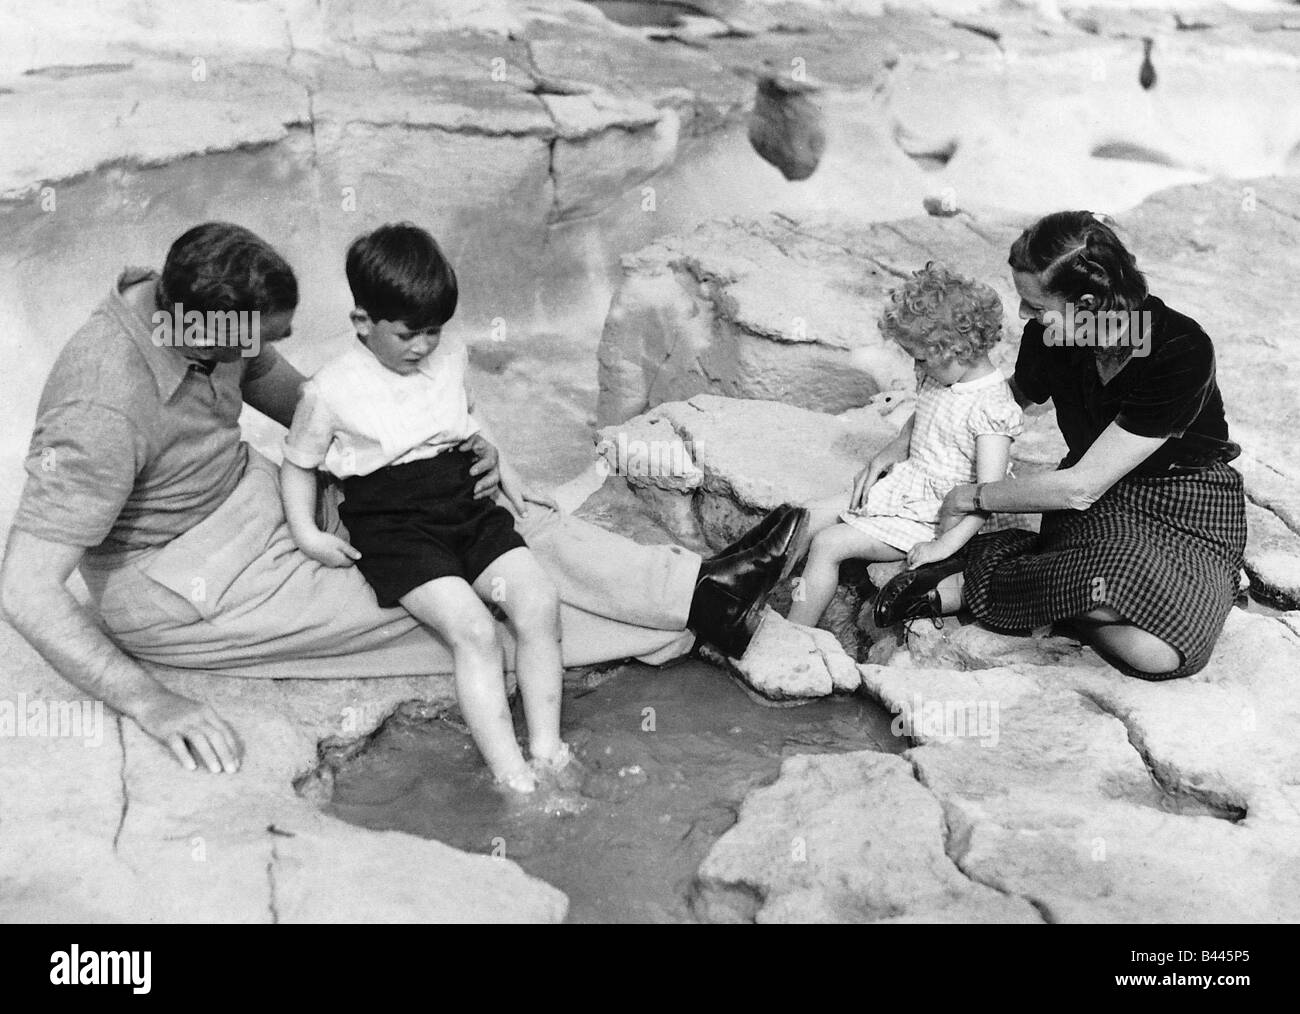 Prince Charles and Princess Anne with Earl and Lady Mountbatten during a holiday in Malta April 1954 - Stock Image